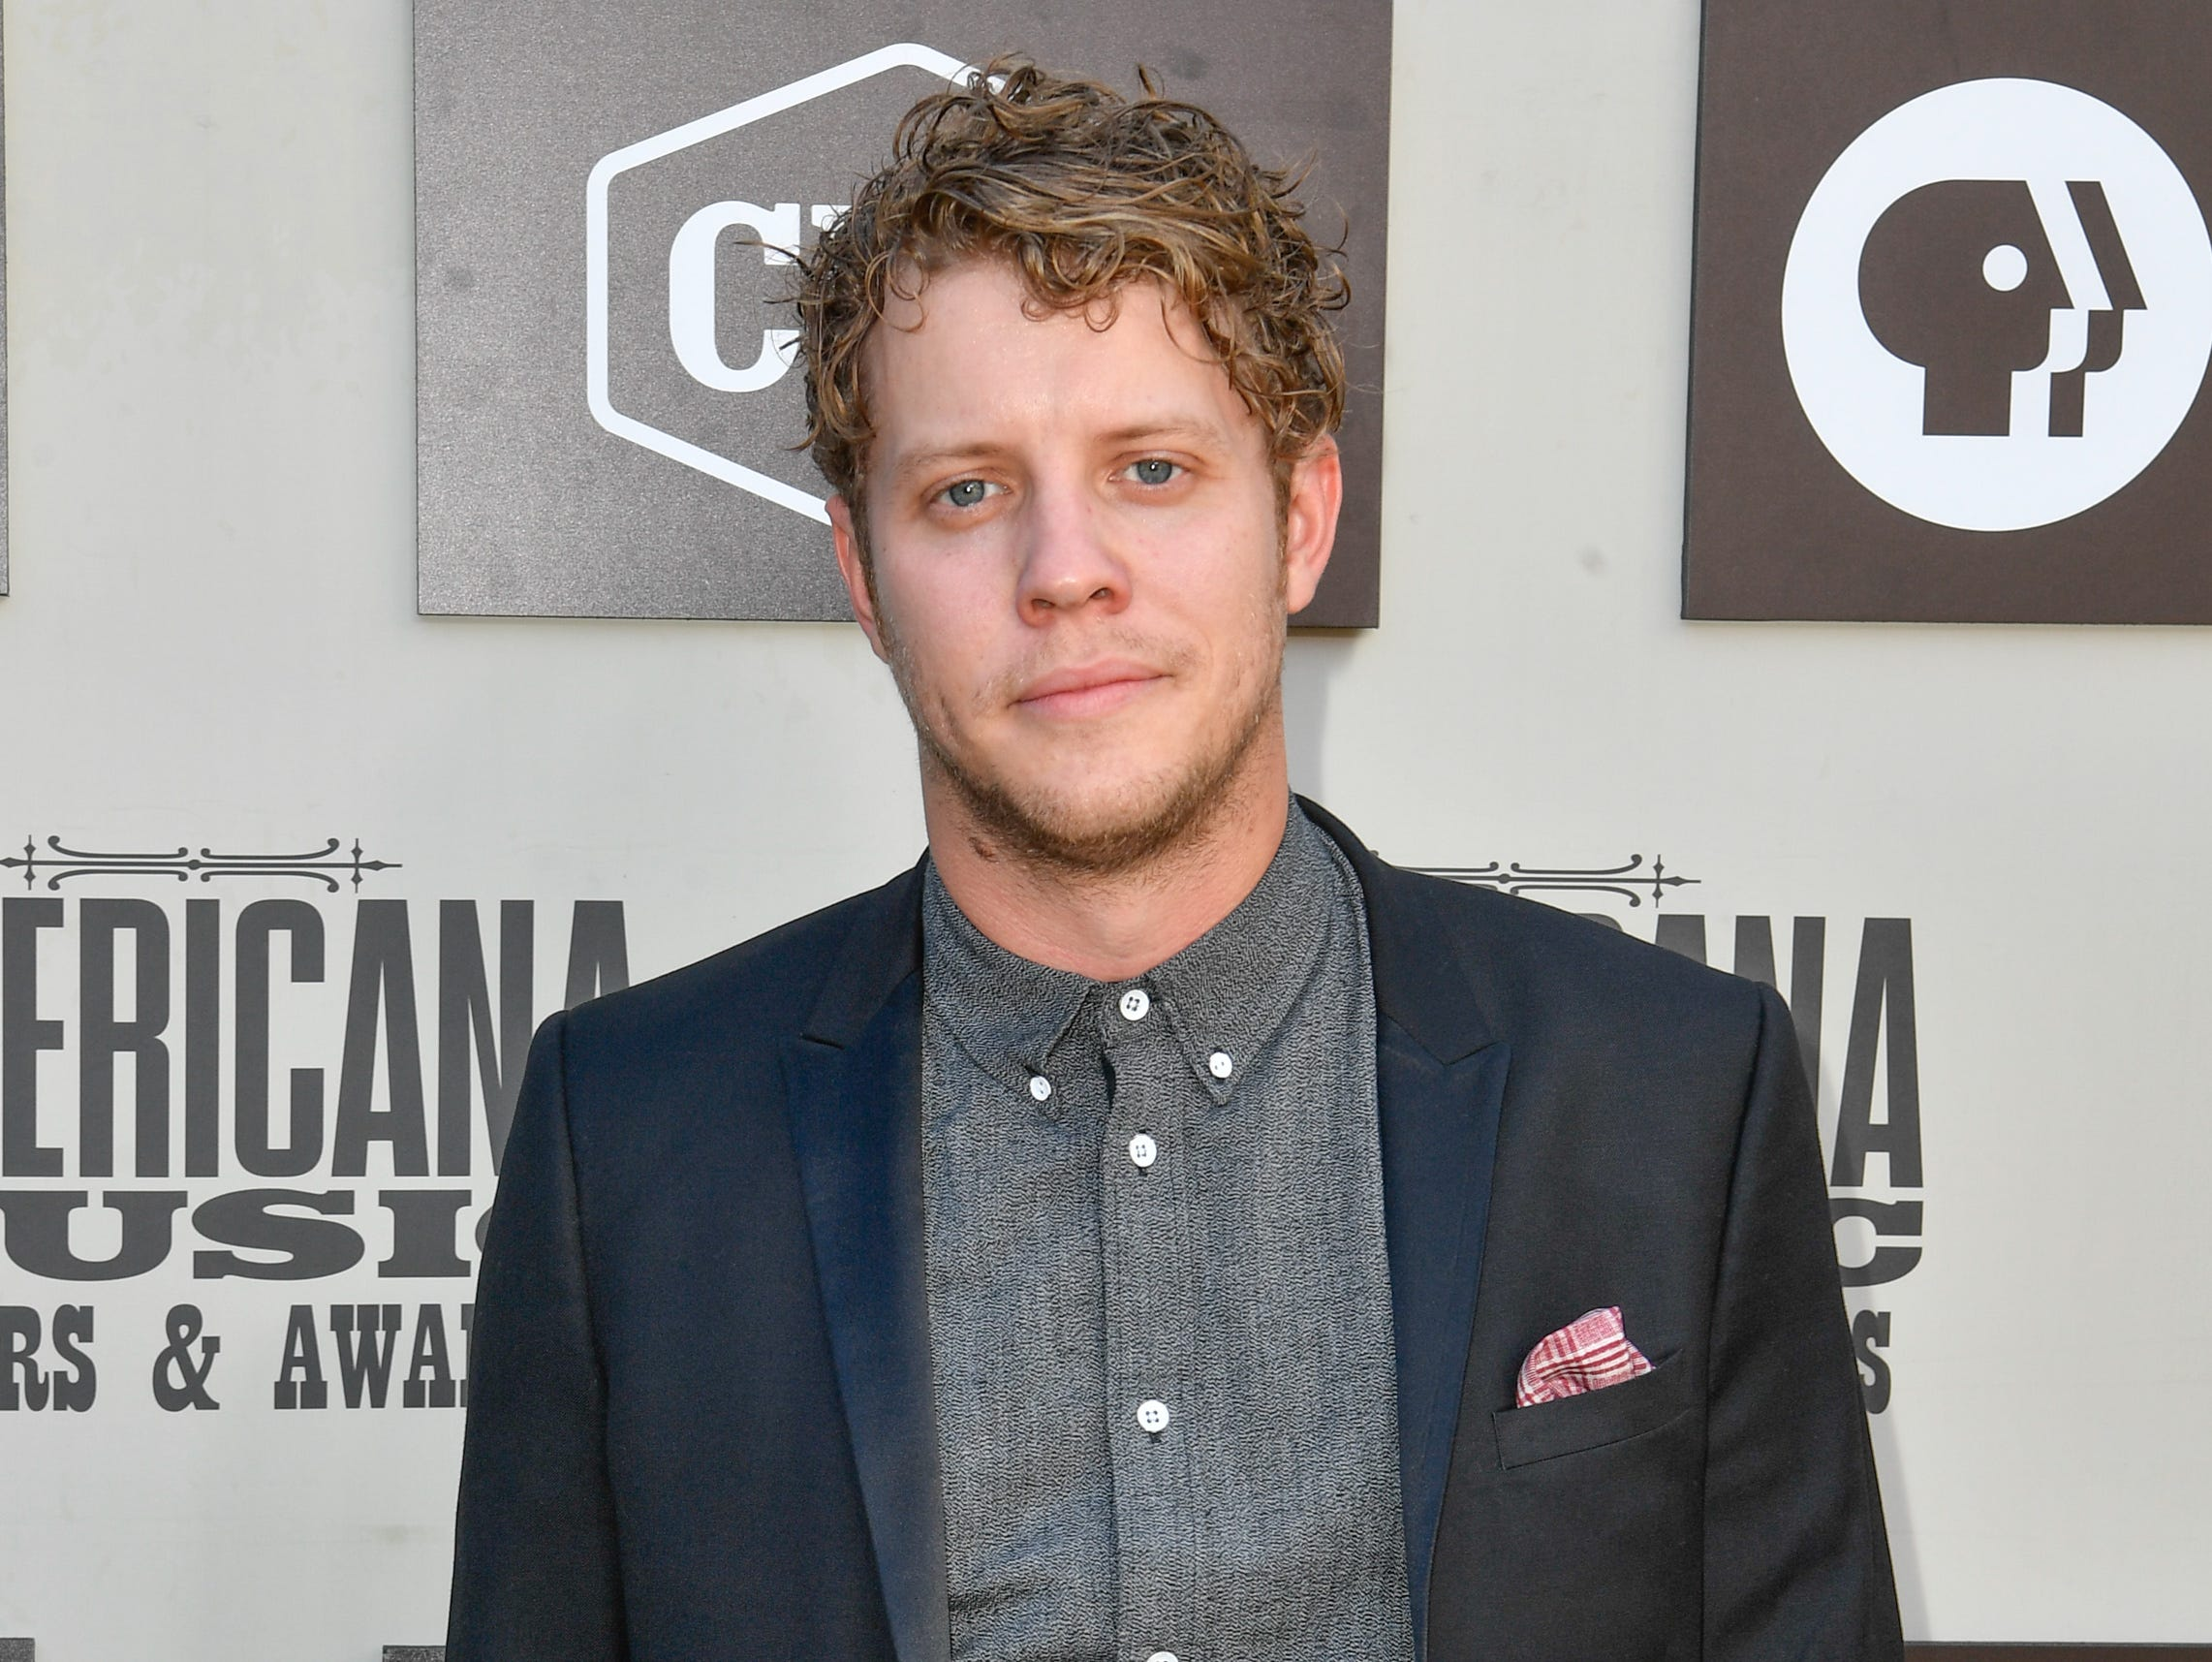 Anderson East poses on the red carpet before the 2018 Americana Honors and Awards show at the Ryman Auditorium in Nashville, Tenn., Wednesday, Sept. 12, 2018.